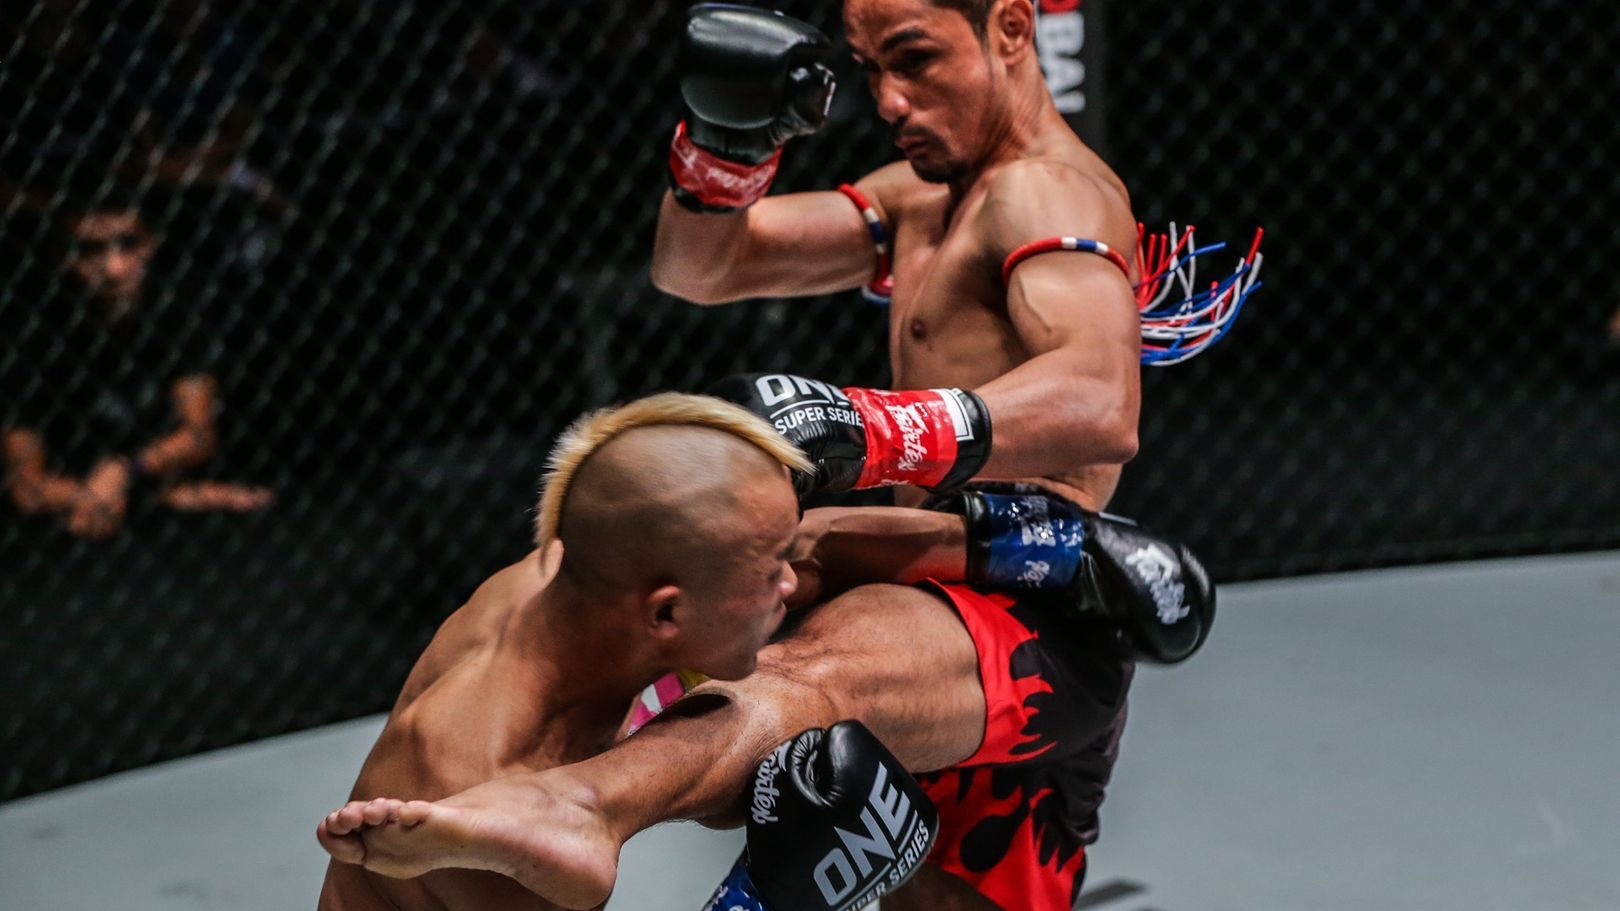 Is Muay Thai And Kickboxing The Same?